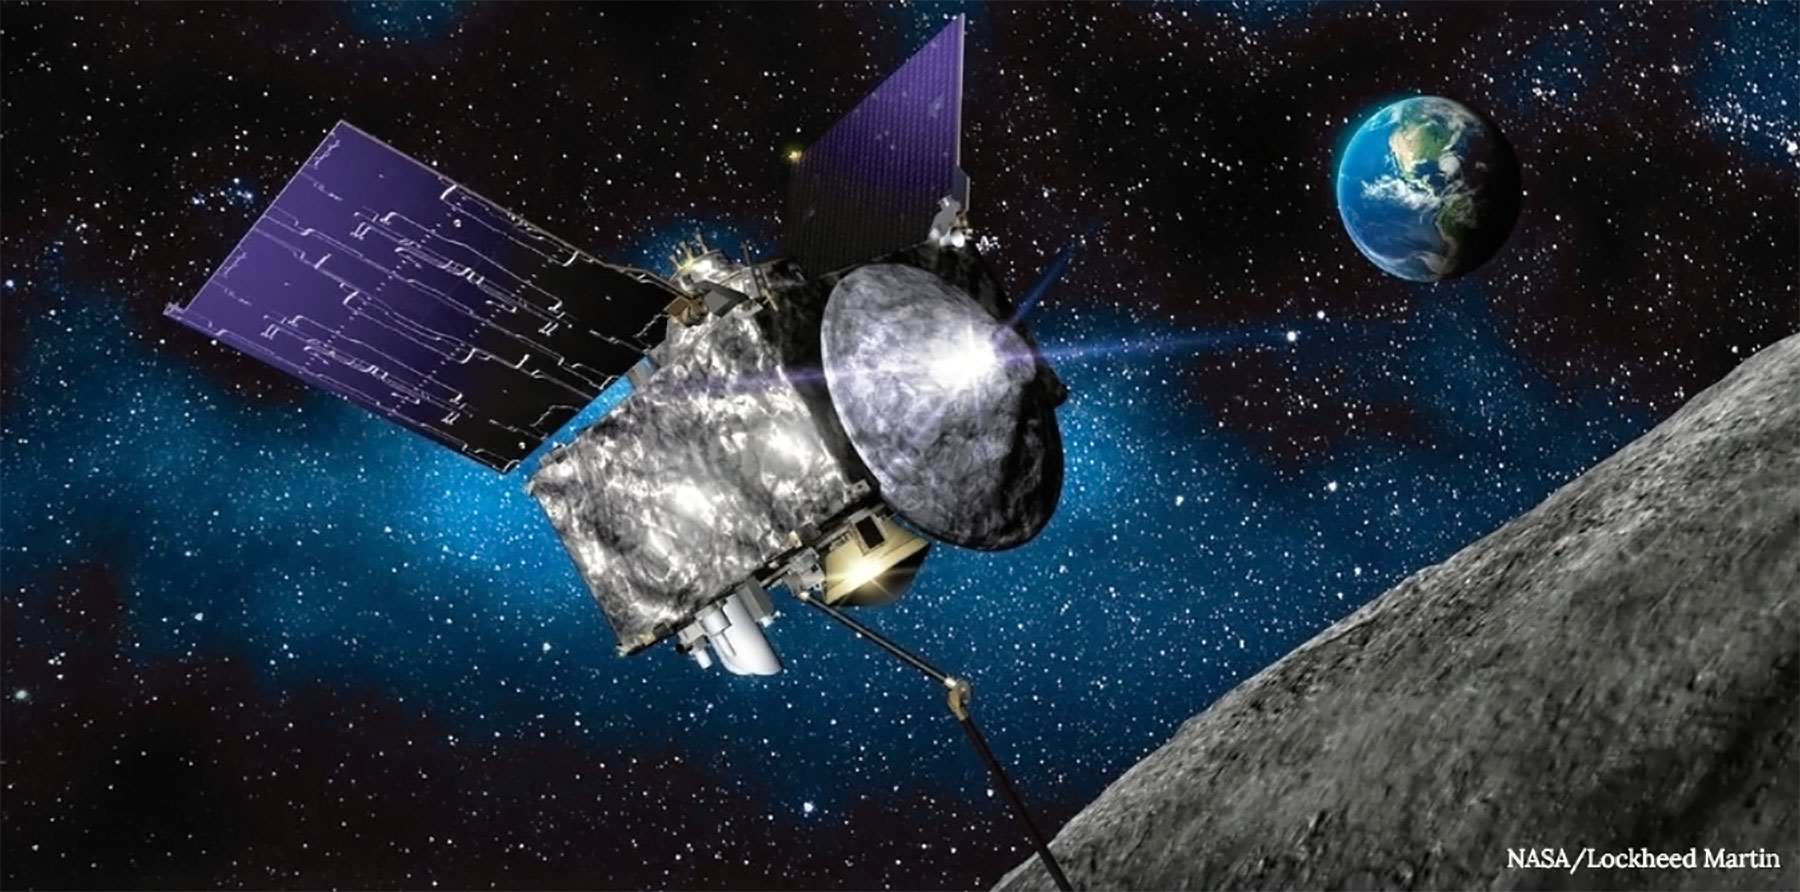 Osiris-Rex Spacecraft. Credit: NASA/Lockheed Martin.